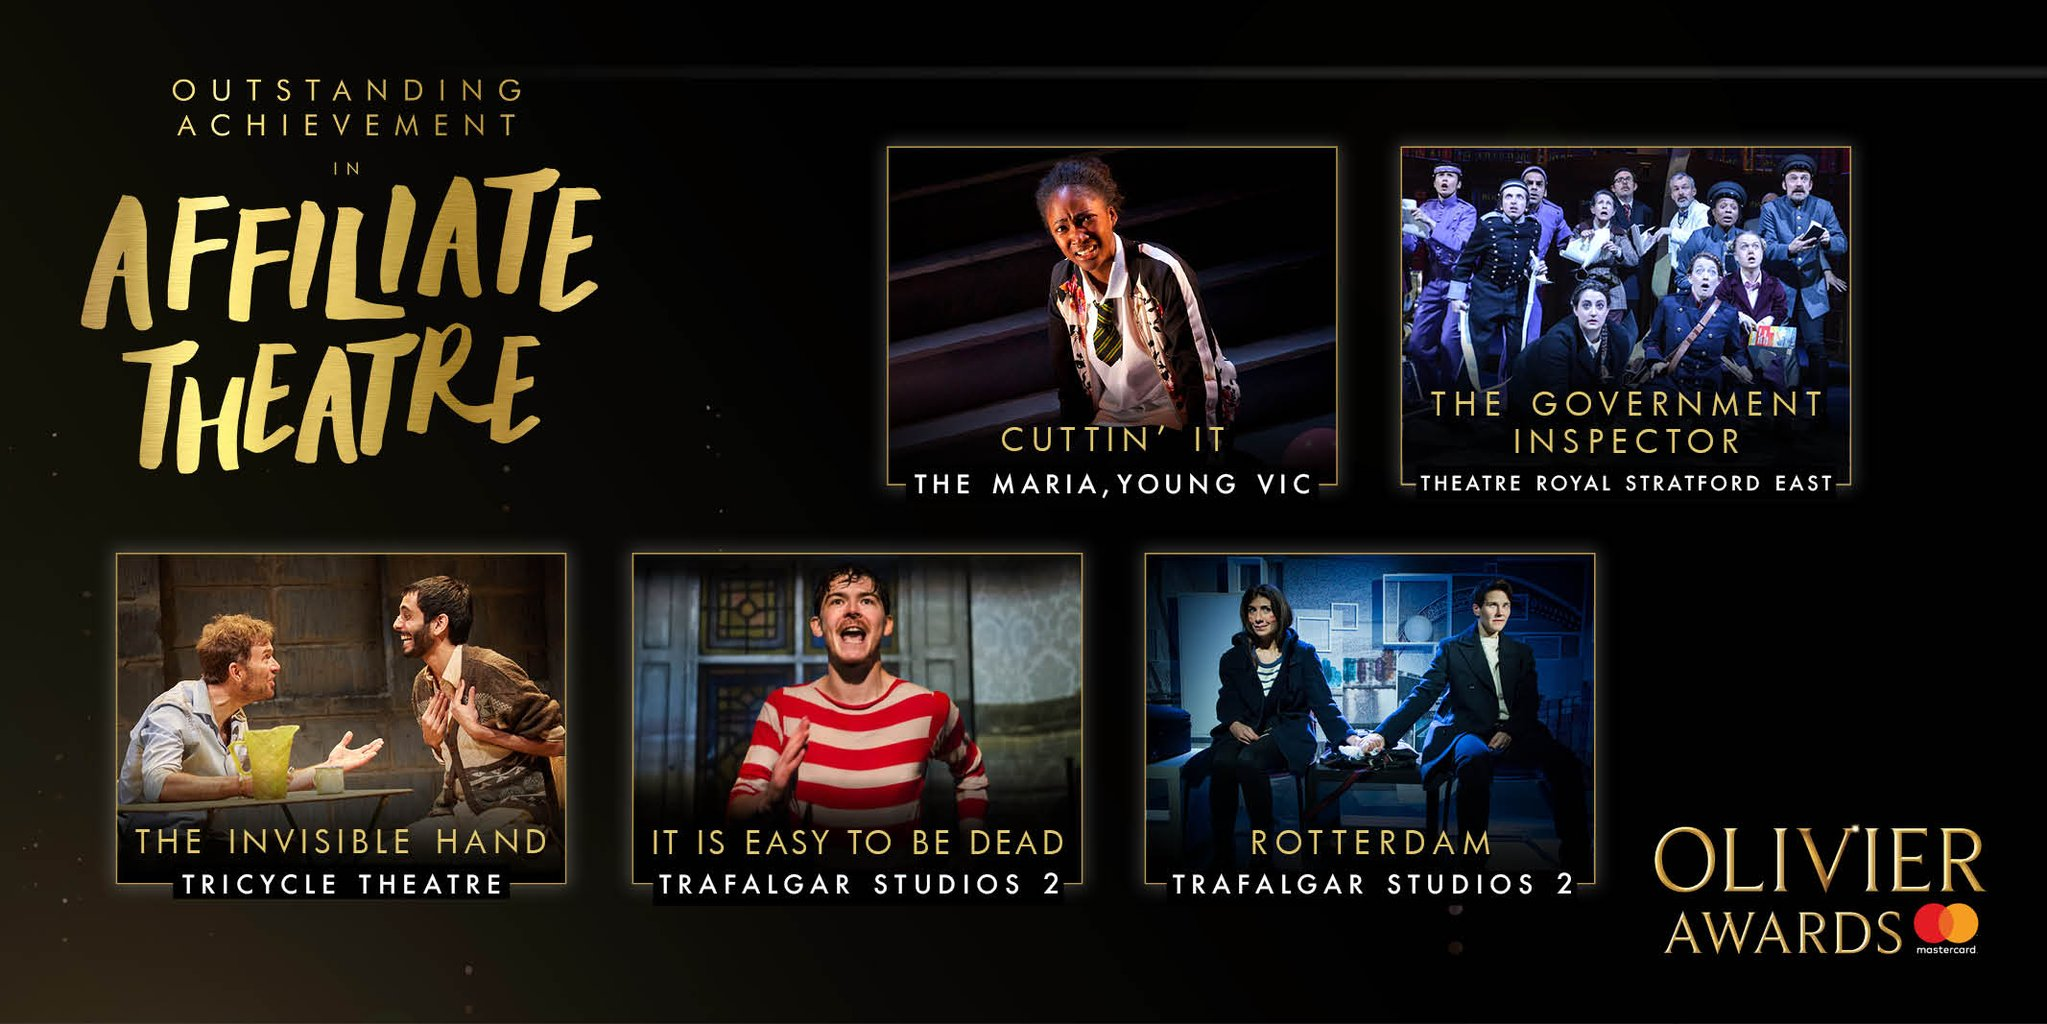 The Nominees for the Olivier Award Outstanding Achievement in an Affiliate Theatre